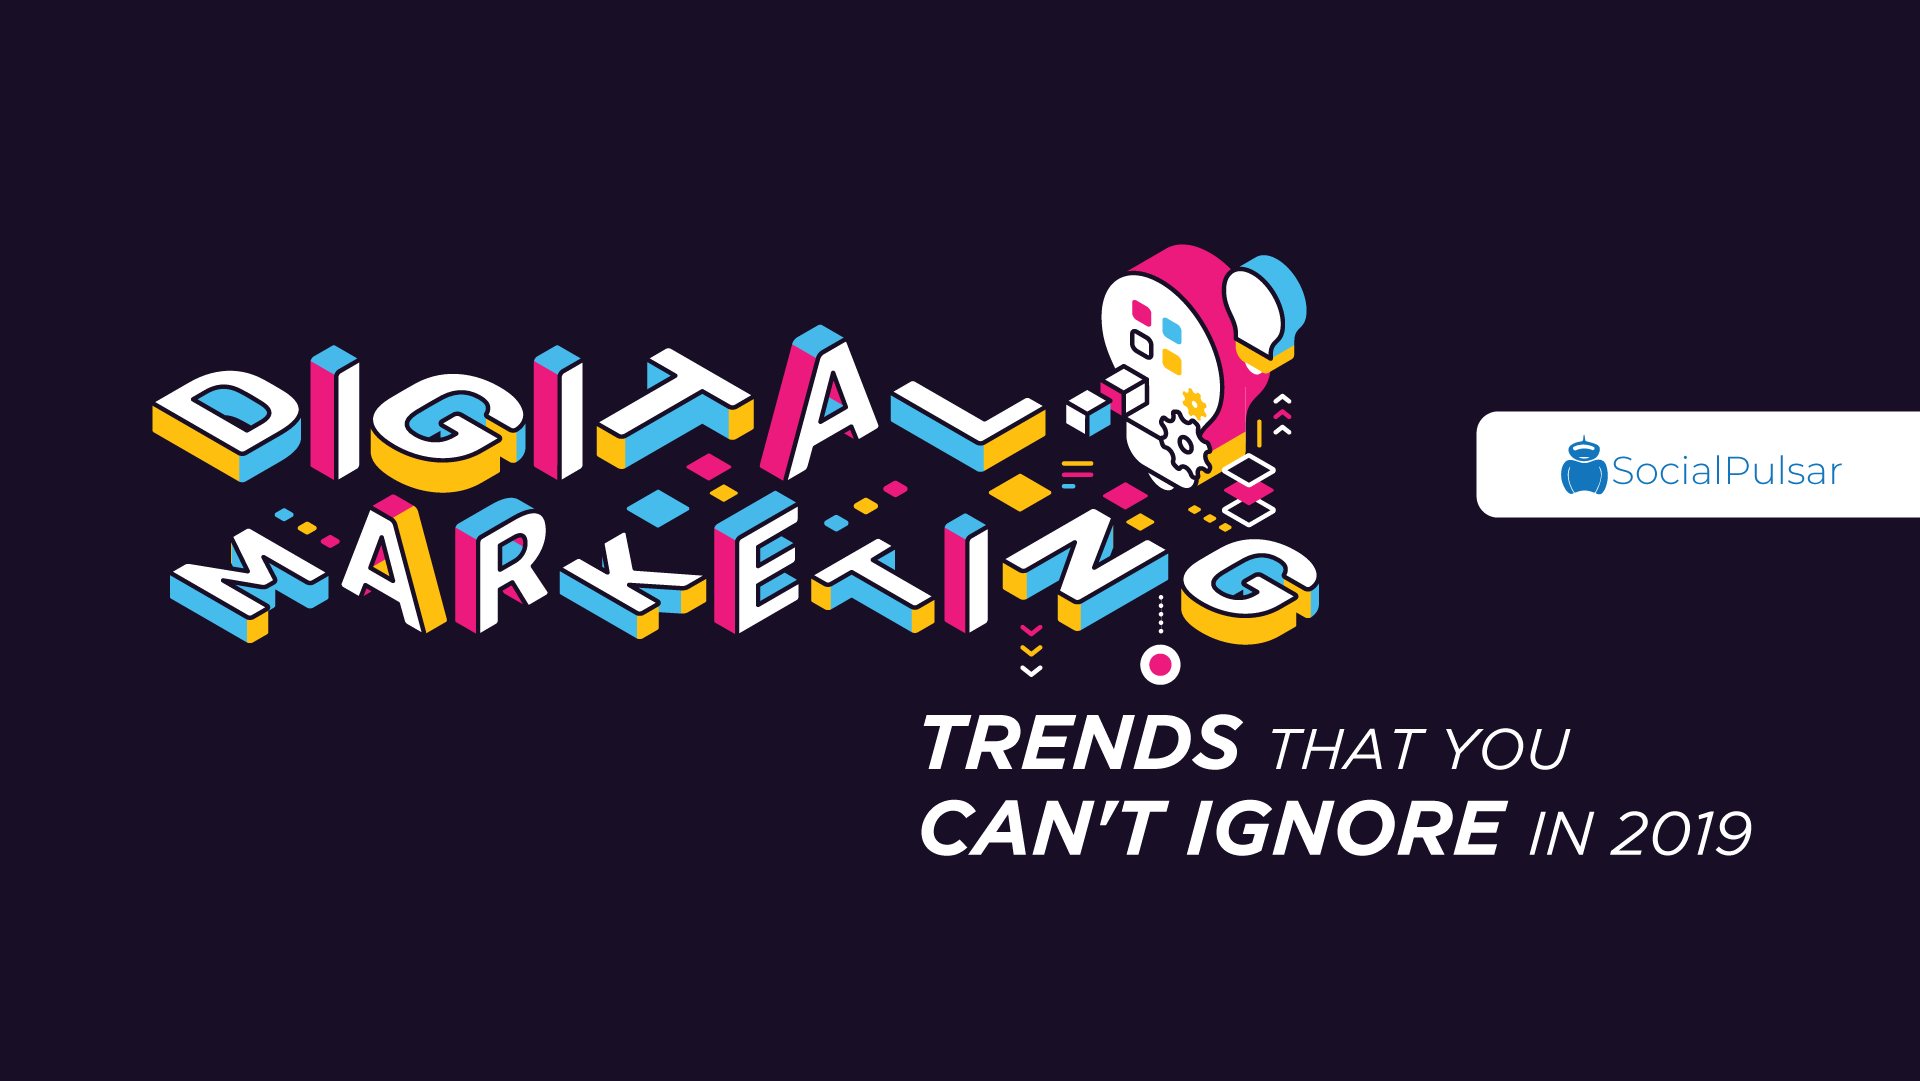 Major Digital Marketing Trends That You Can't Ignore In 2019